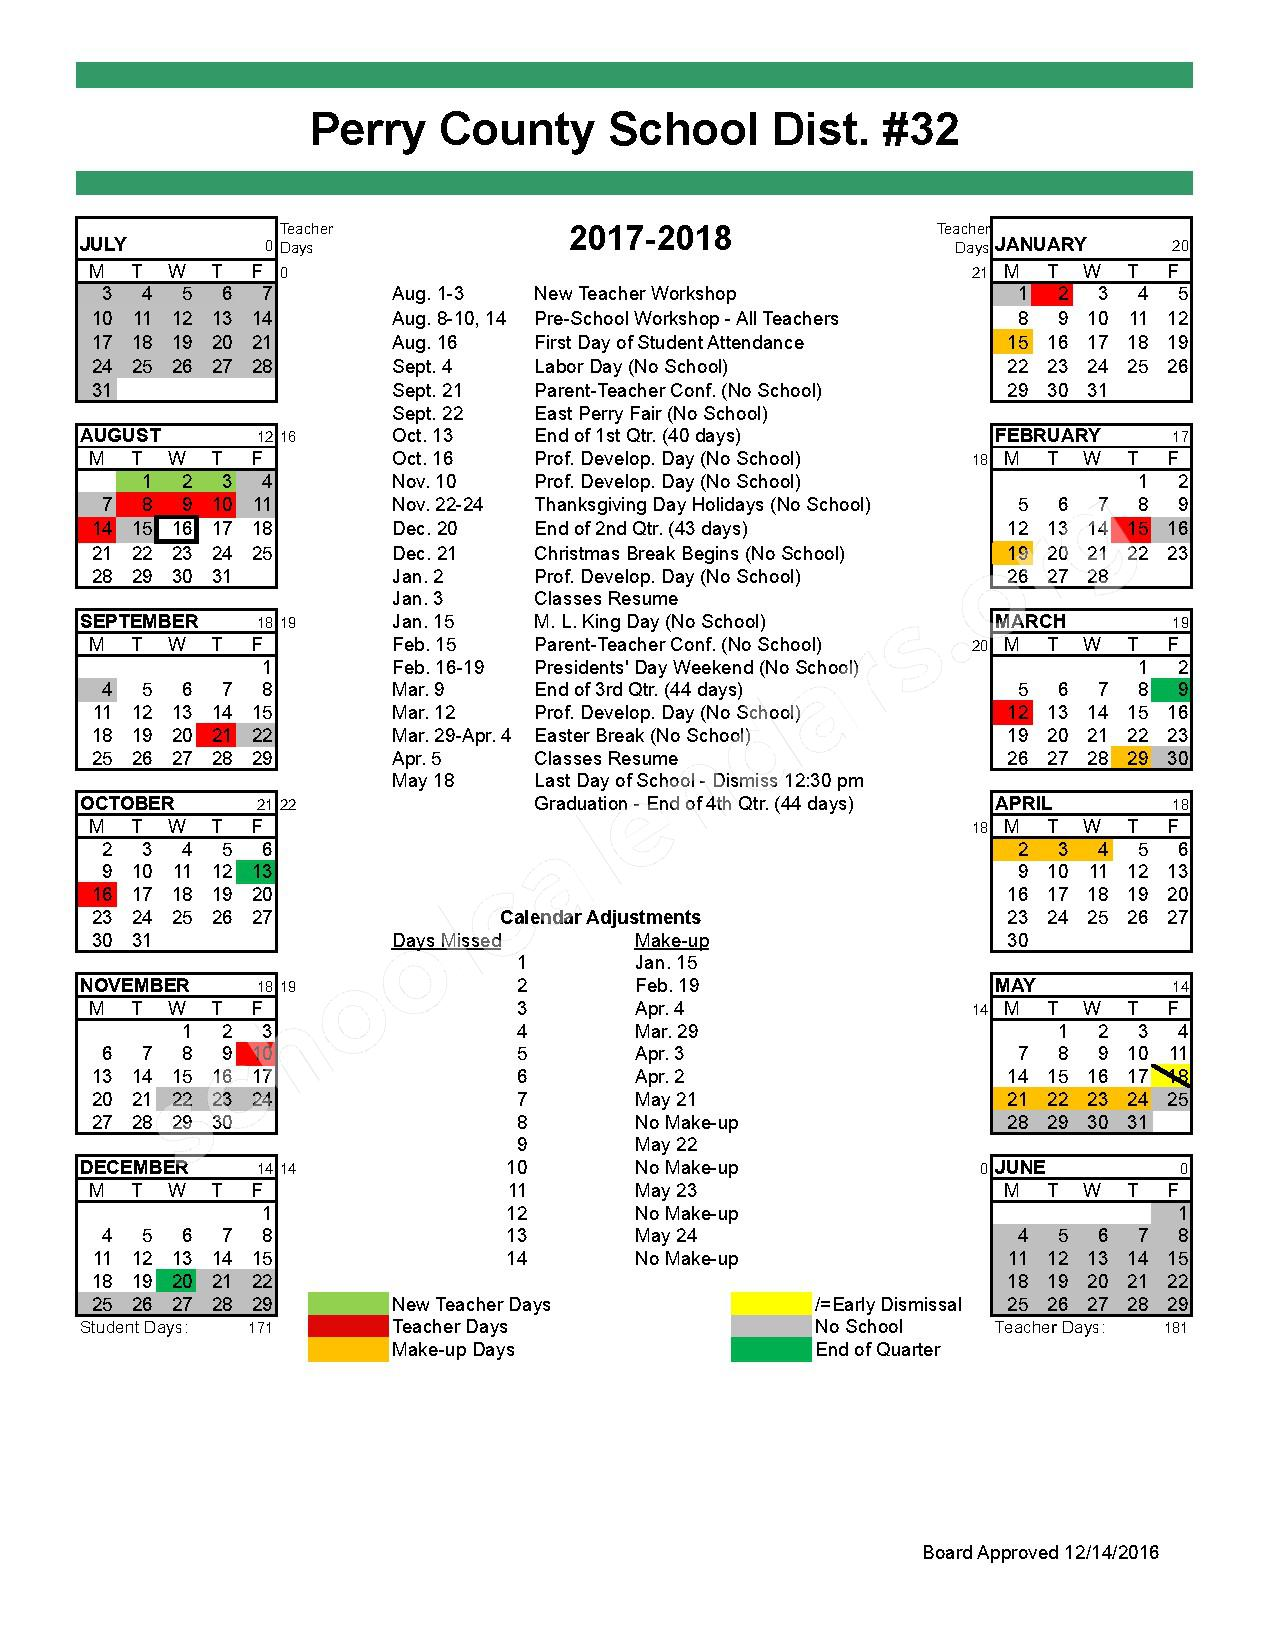 2017 - 2018 School Calendar – Perry County School District 32 – page 1